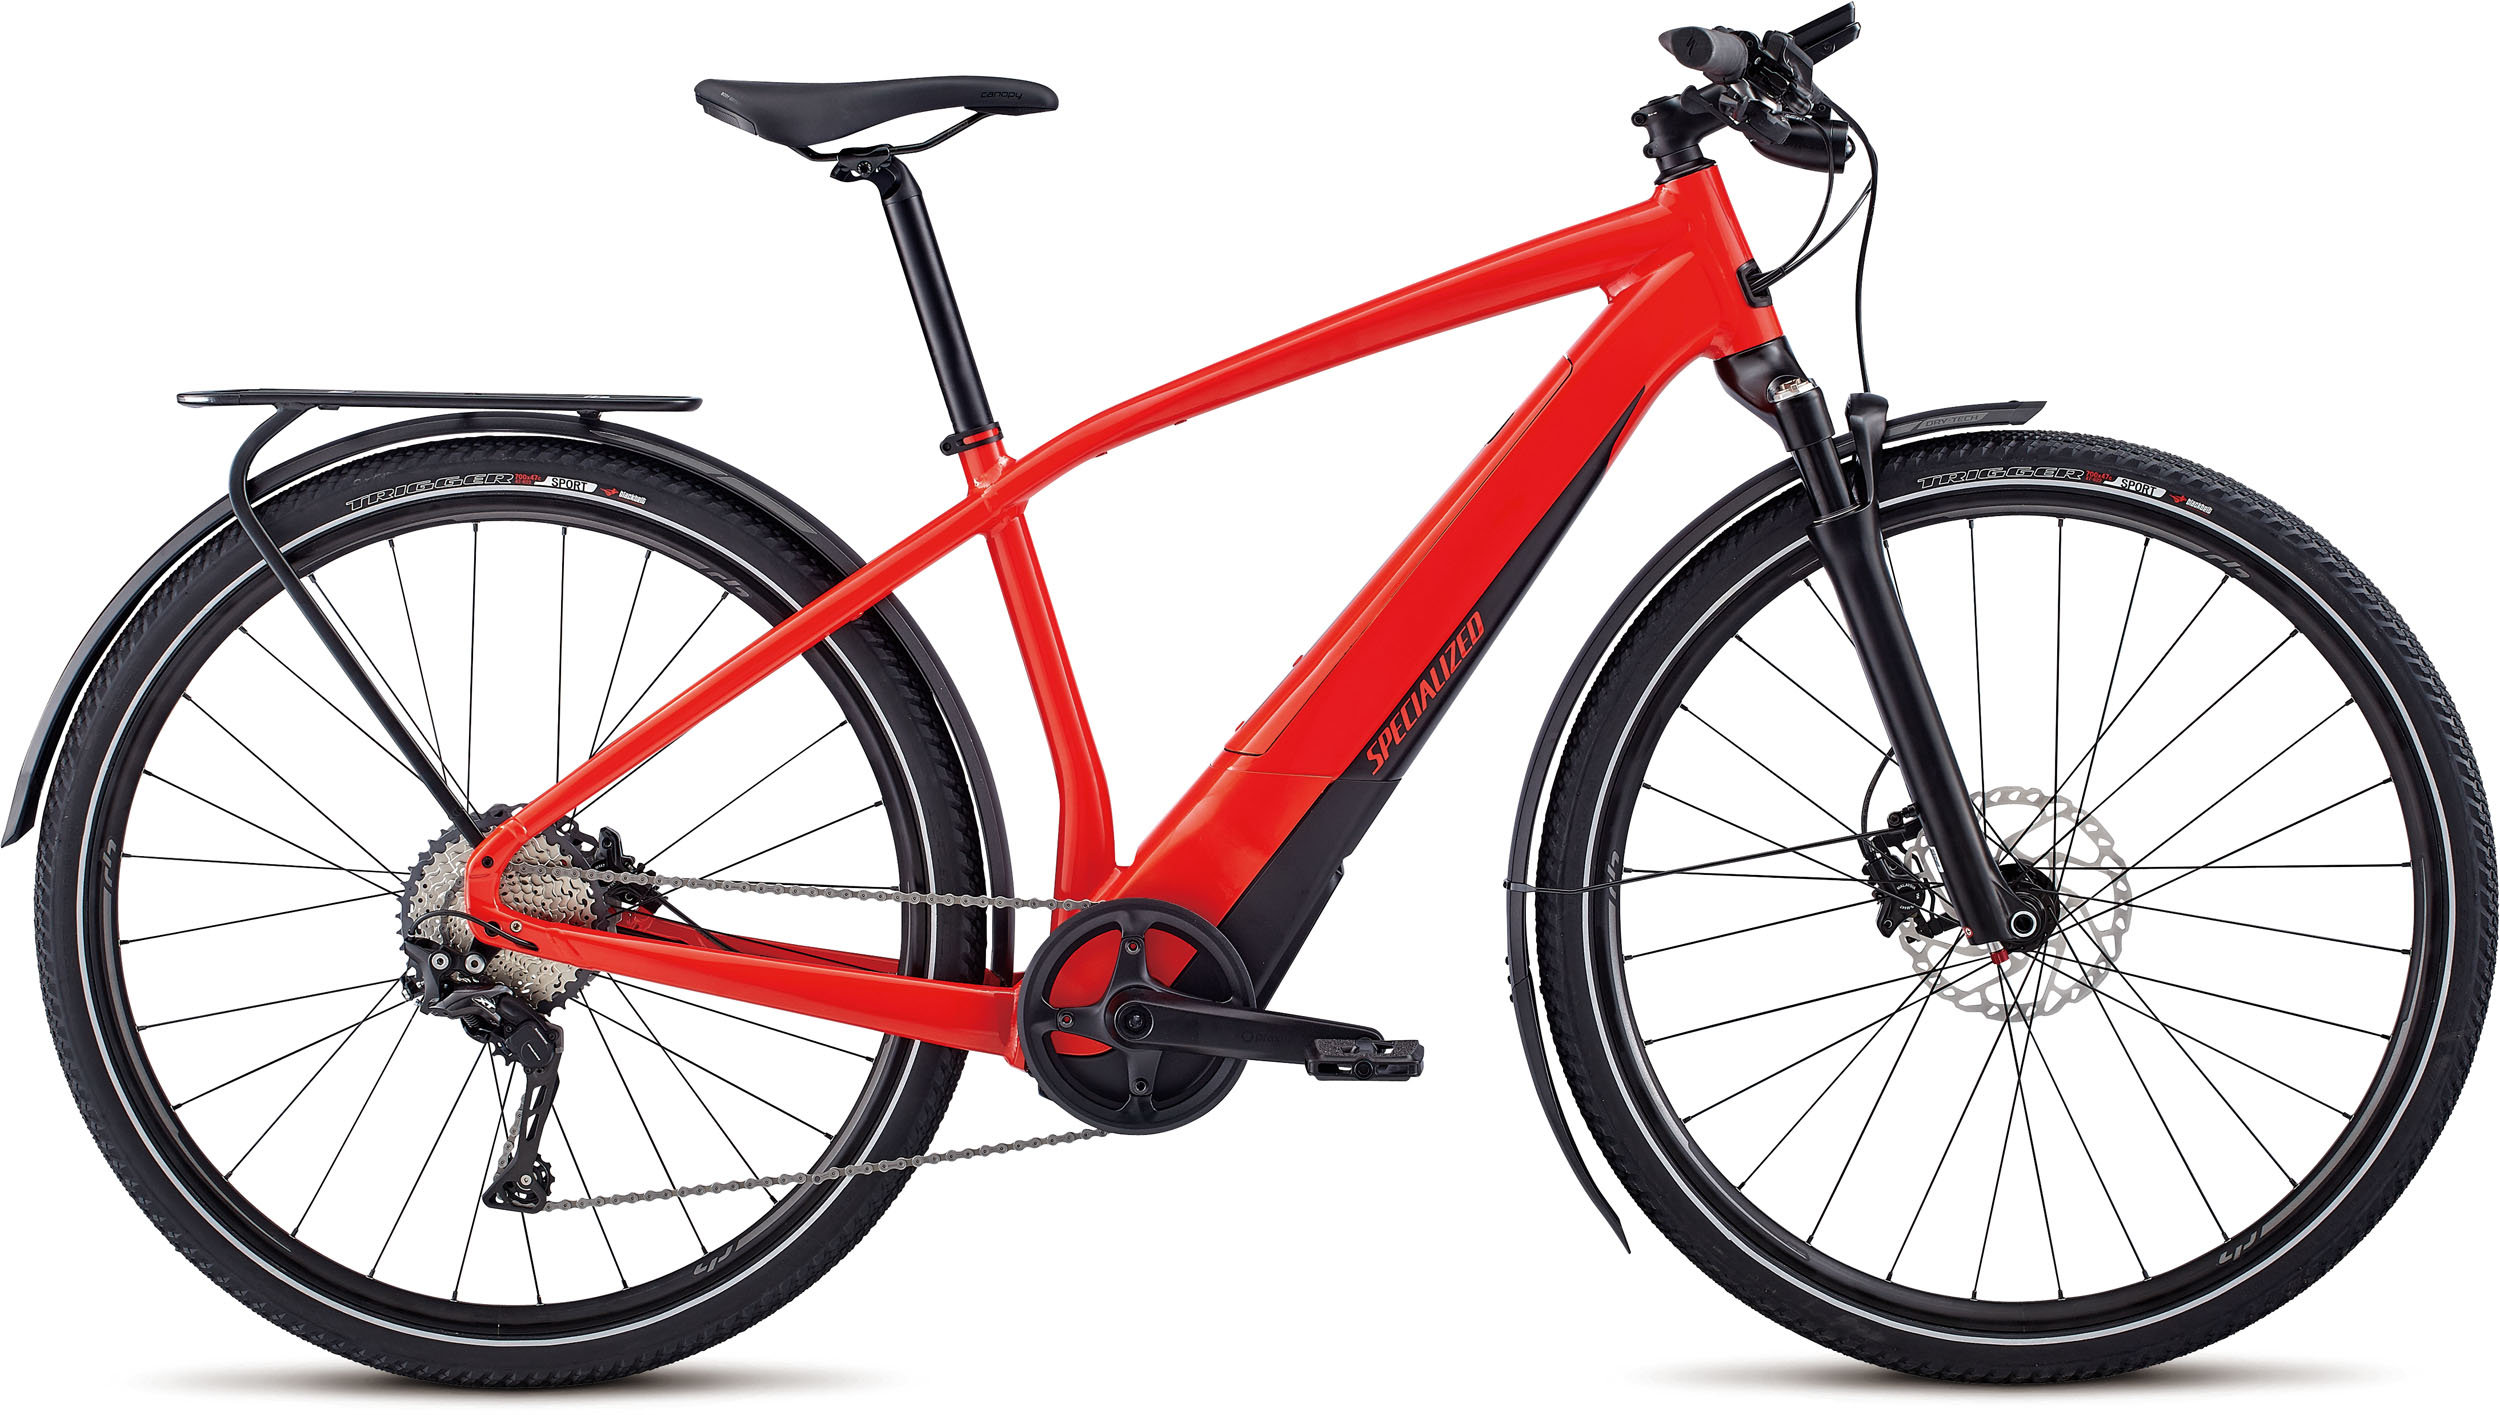 Specialized Men´s Turbo Vado 4.0 Satin Nordic Red / Black MD - Specialized Men´s Turbo Vado 4.0 Satin Nordic Red / Black MD